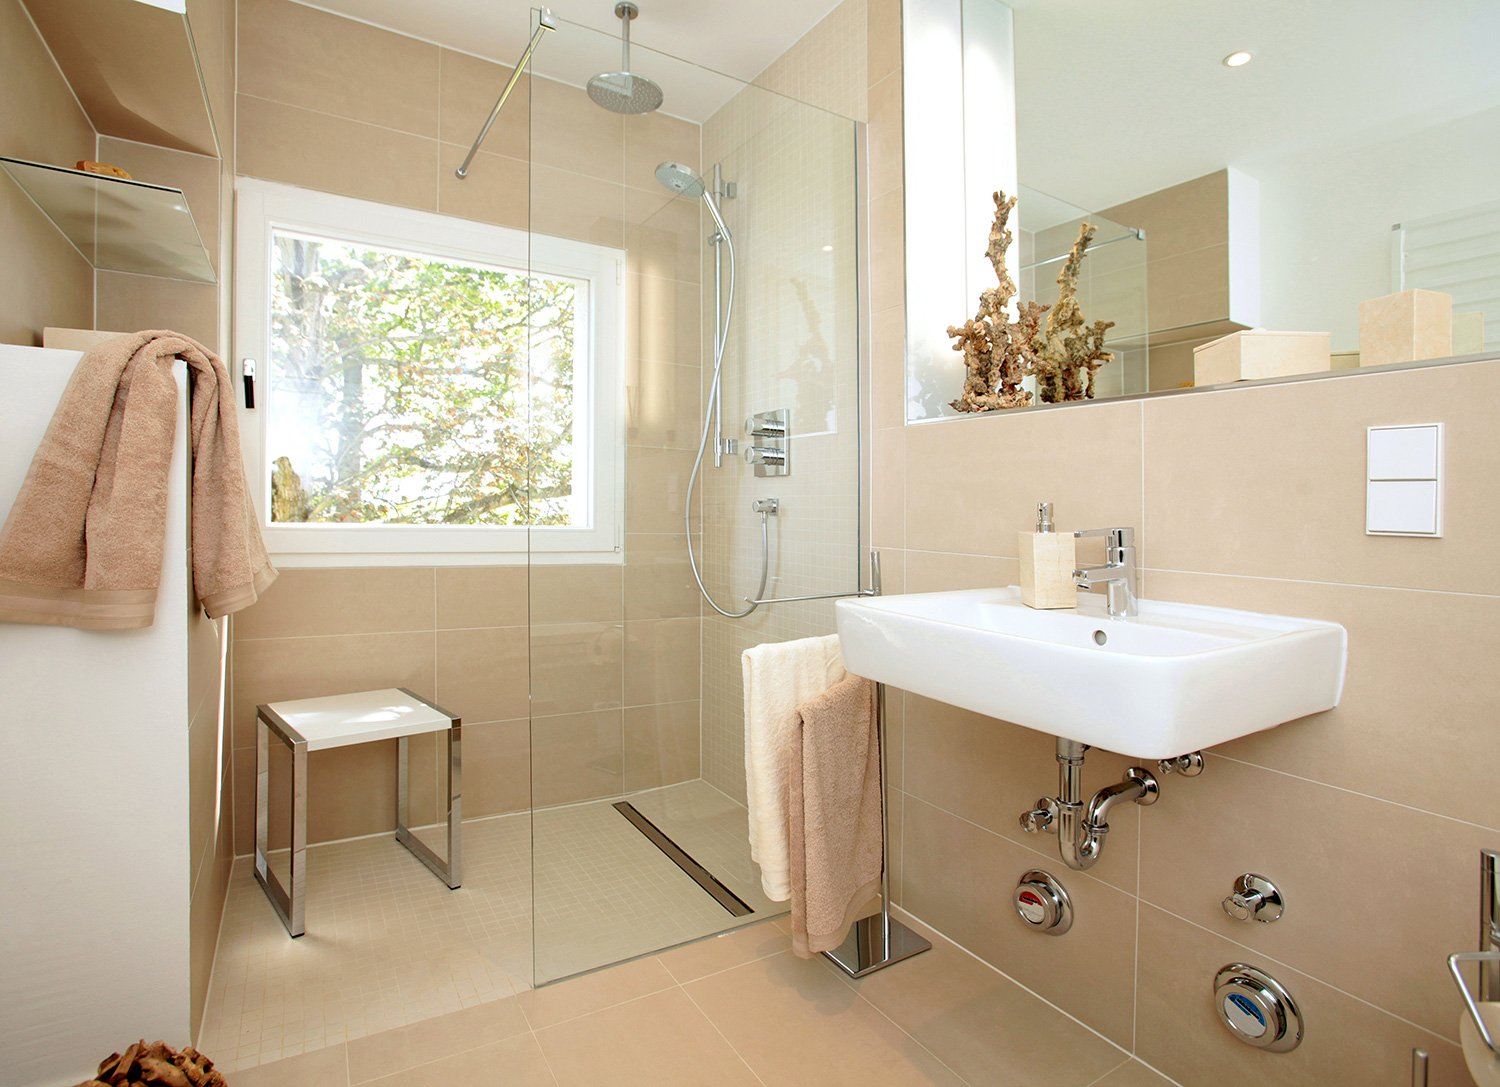 Disabled Shower - Wet rooms for the eldery East London